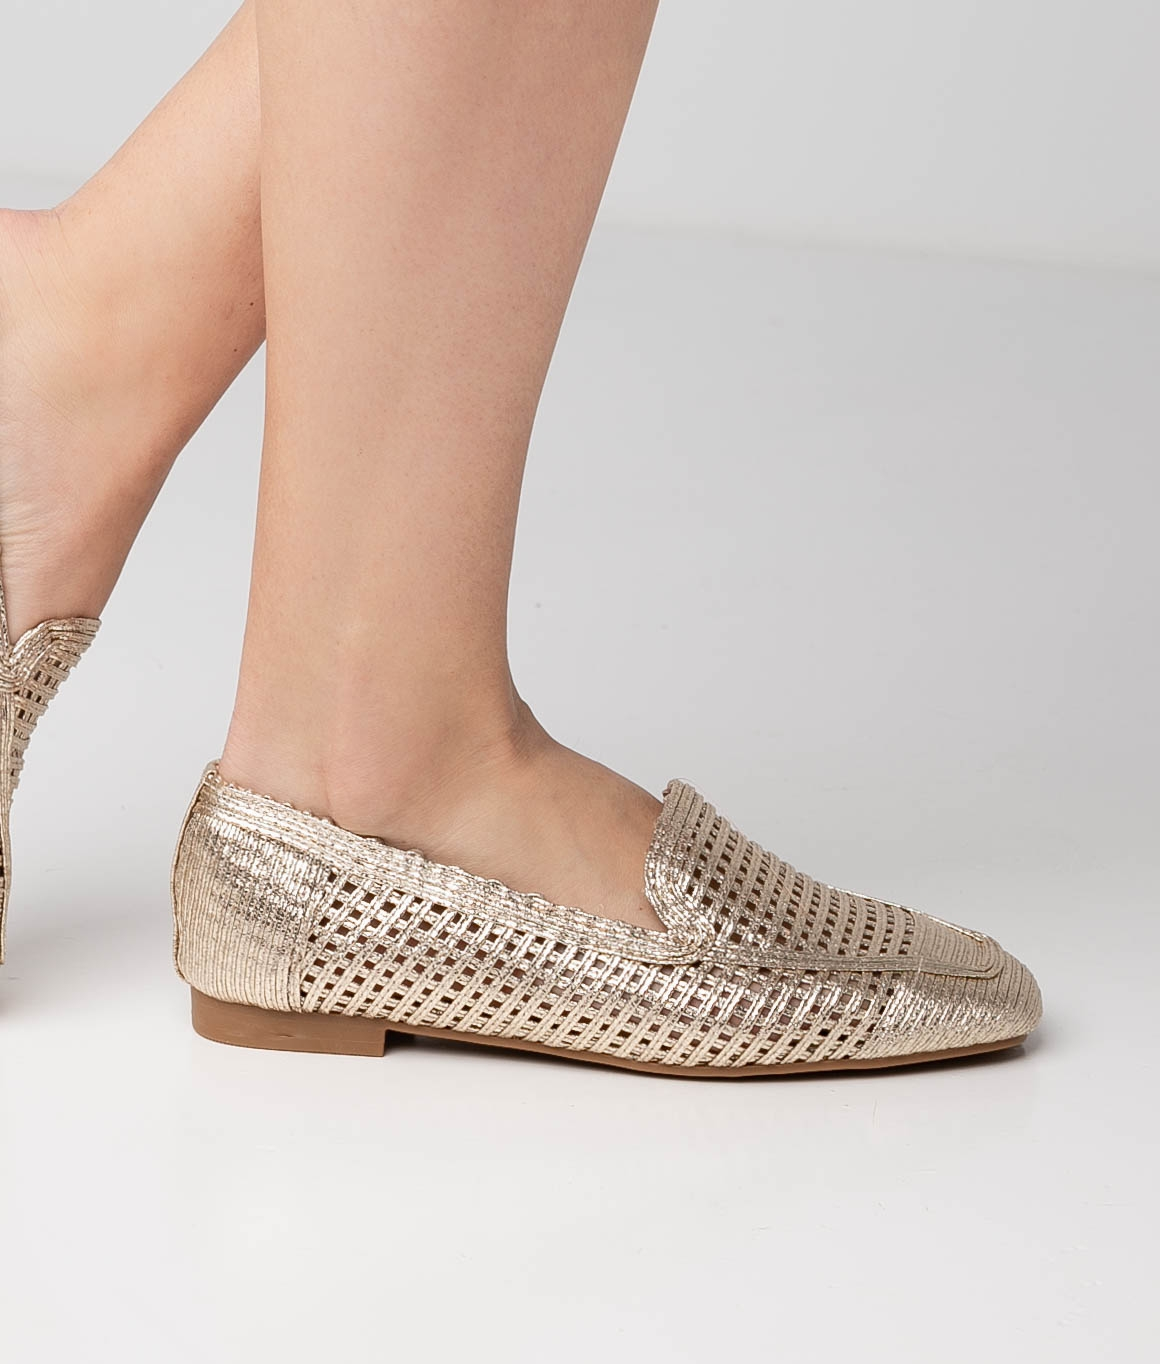 CHAUSSURE MISORE - OR